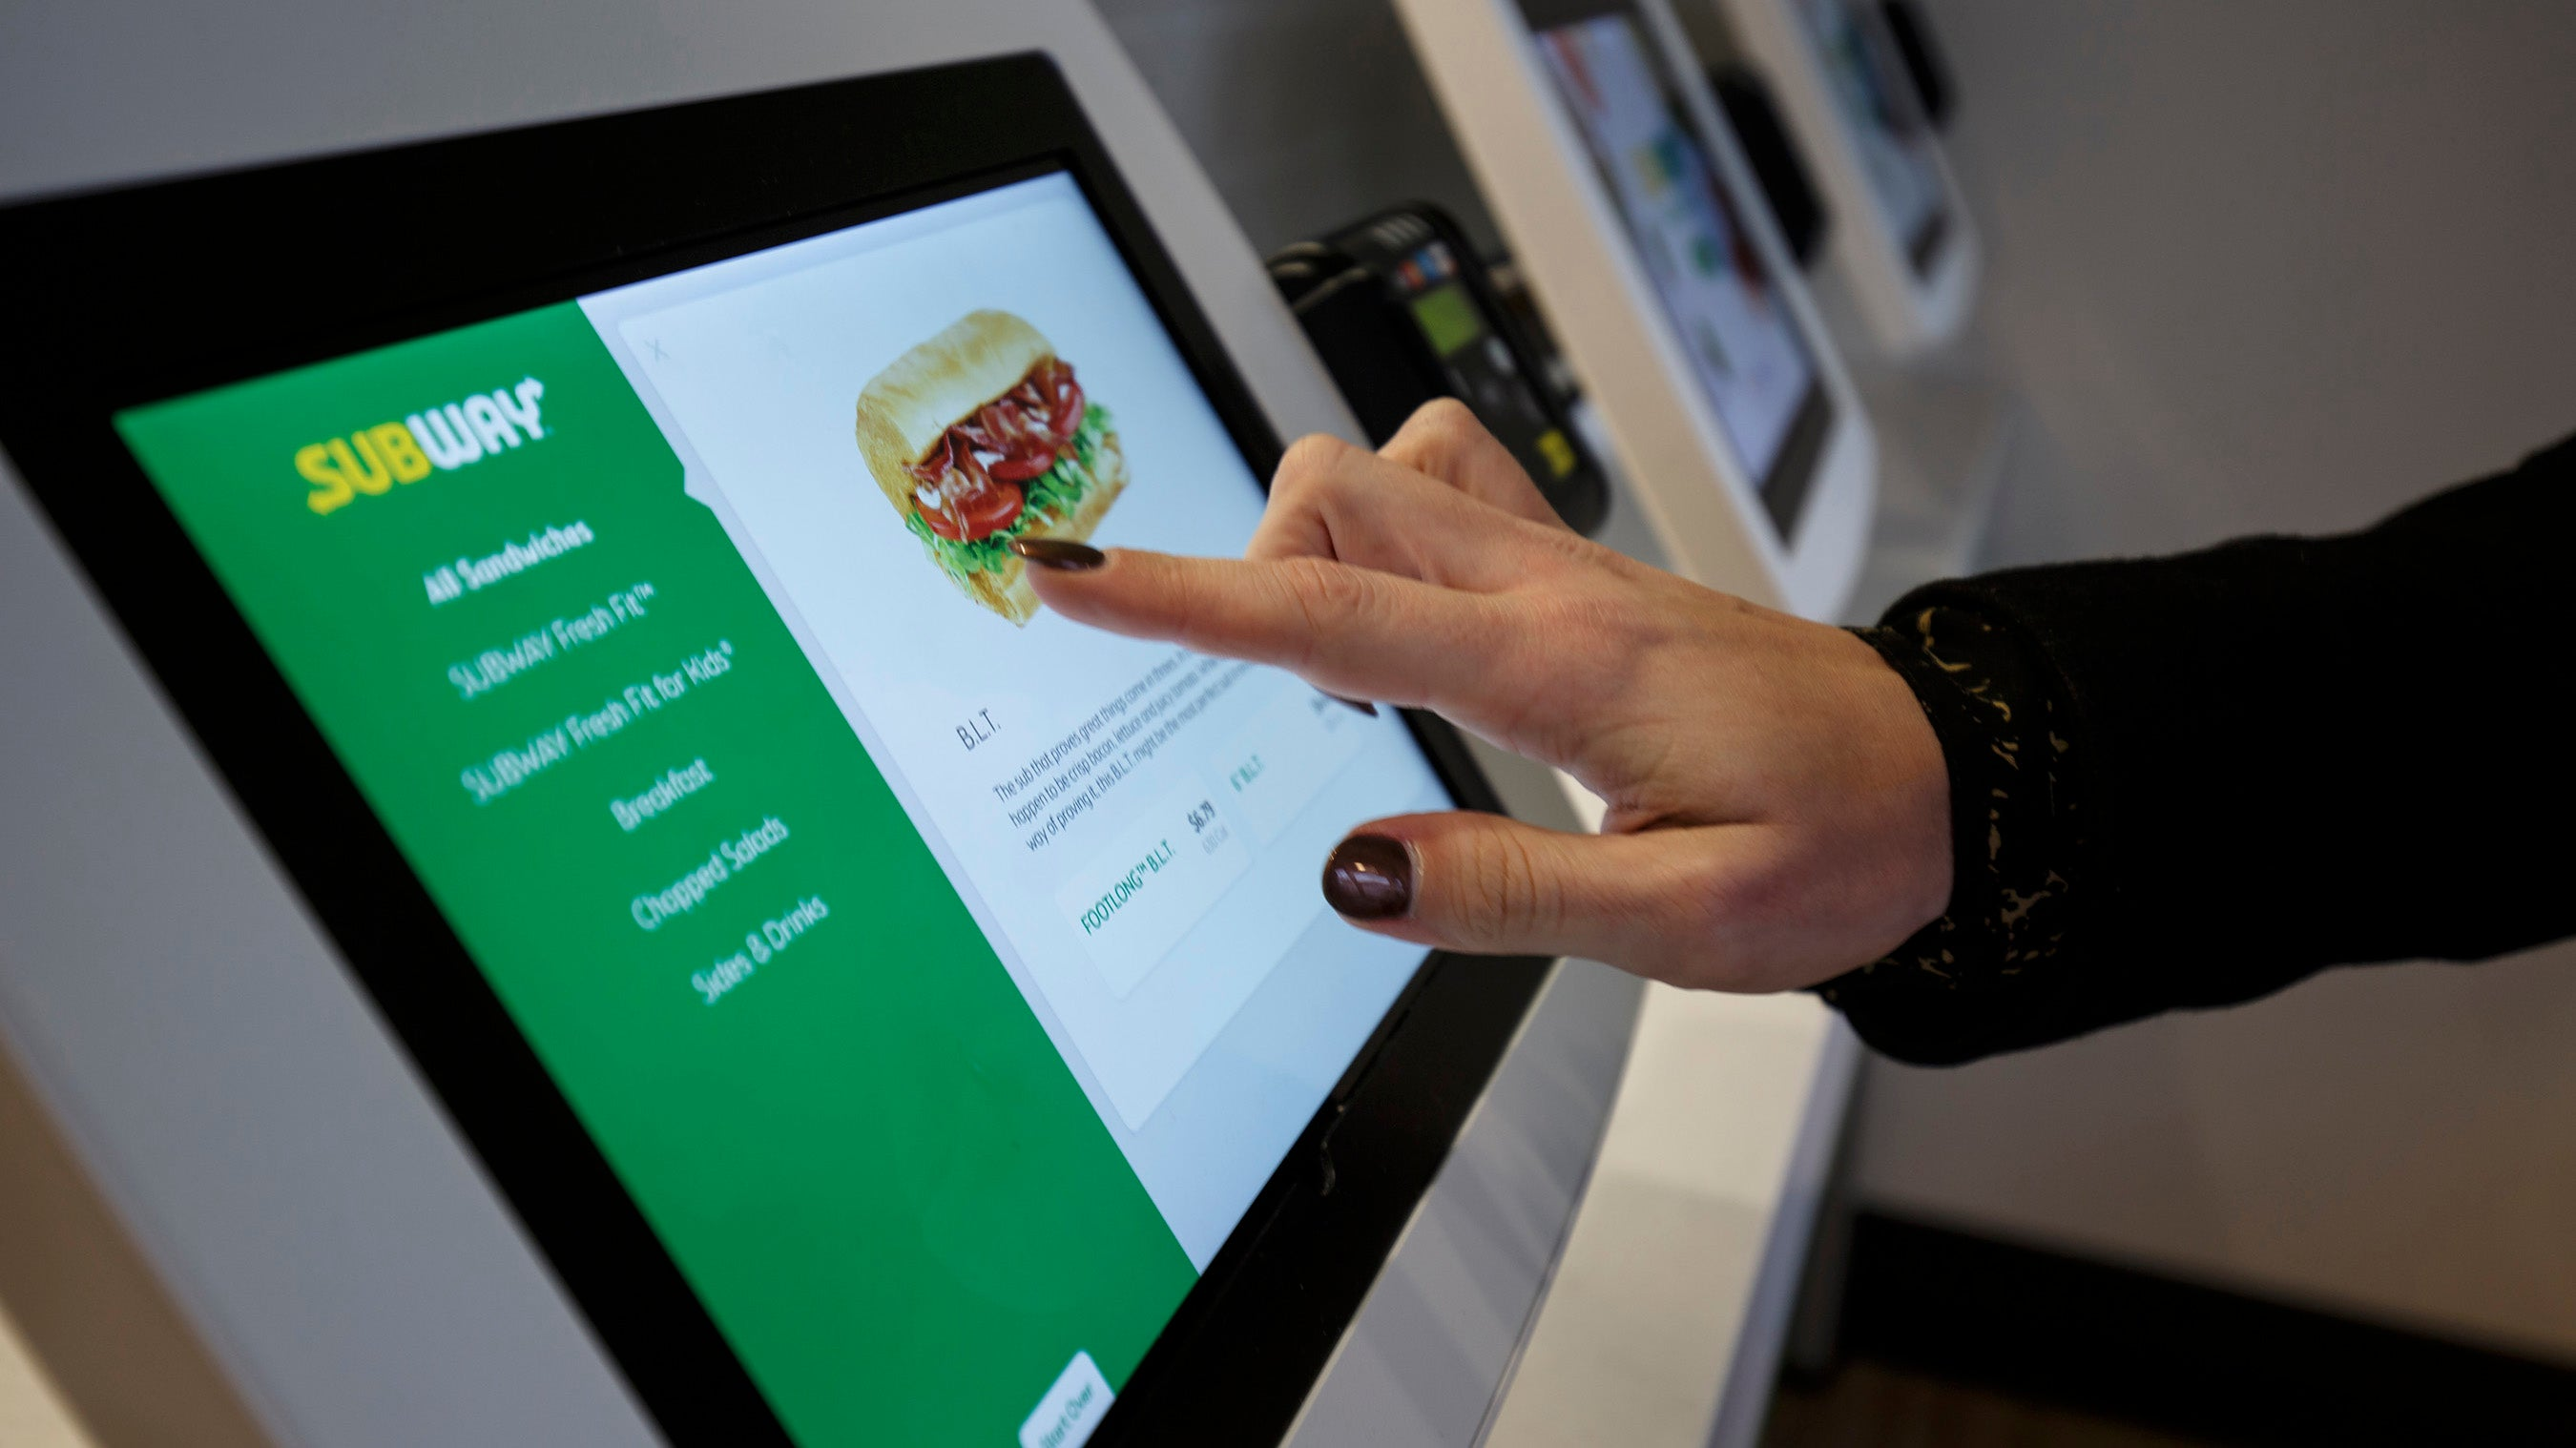 Subway's High-Tech Redesign Is Bad And Wrong